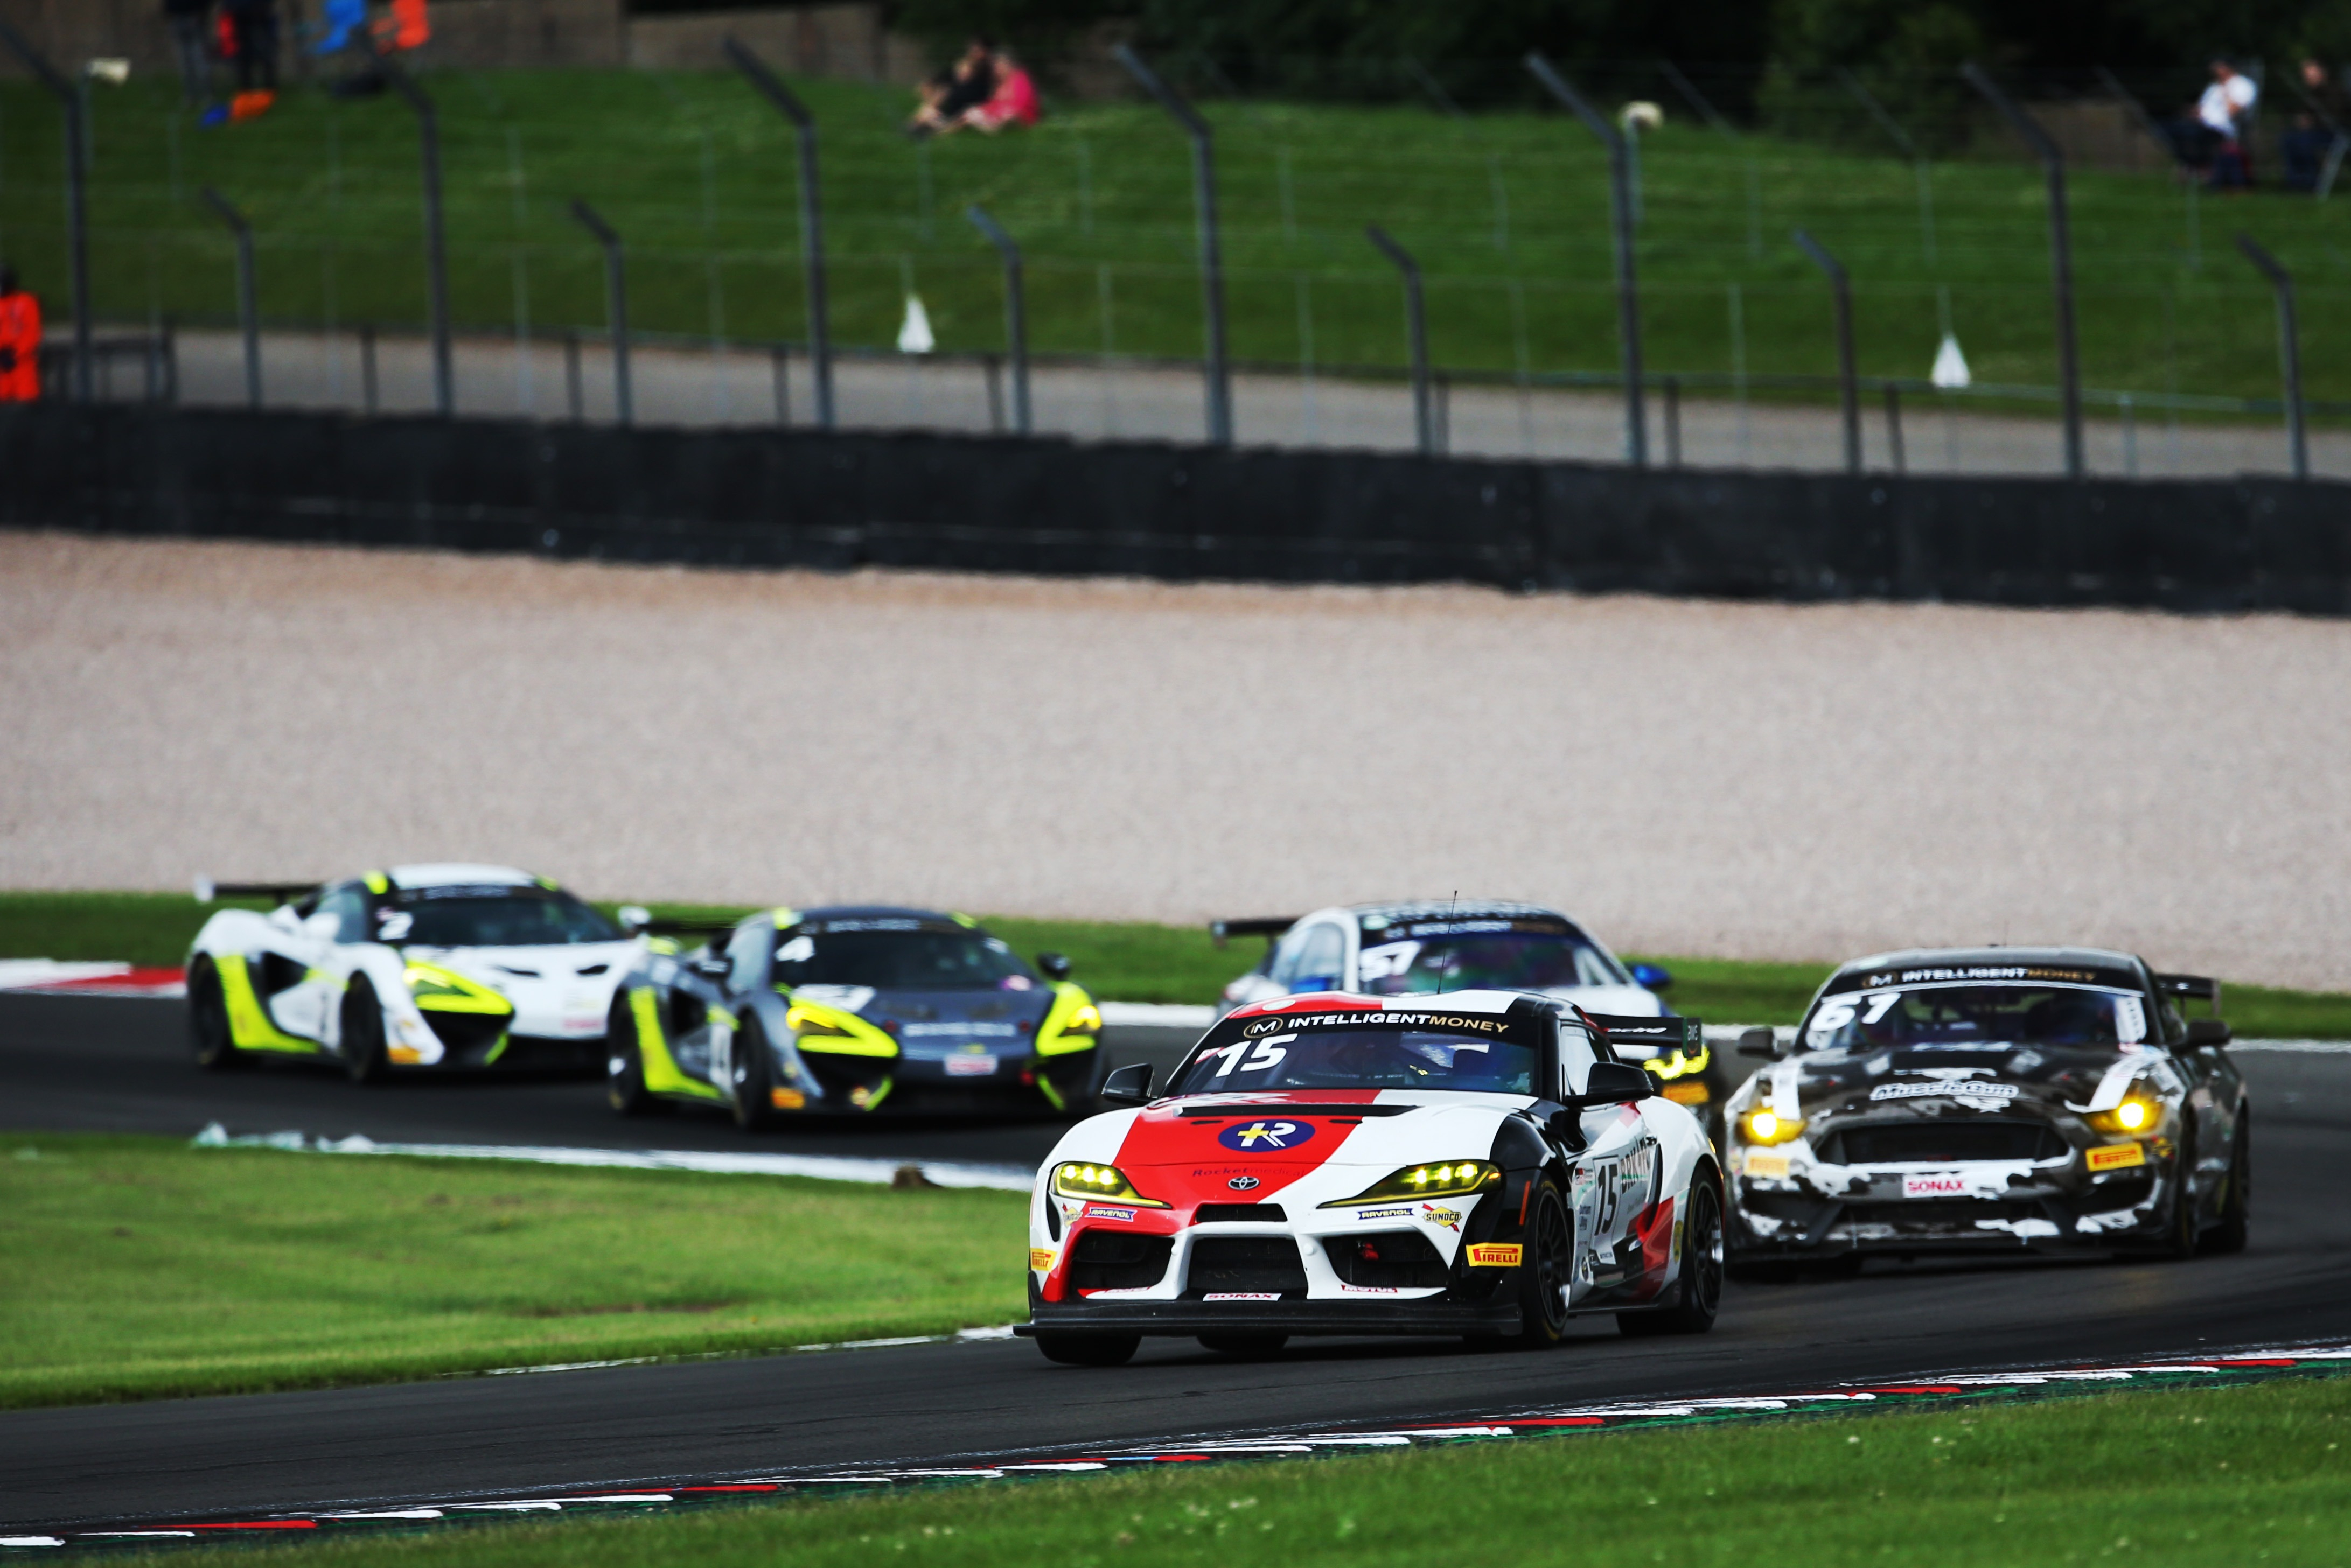 Ferguson got involved in contact attempting to fend off GT4 pack behind